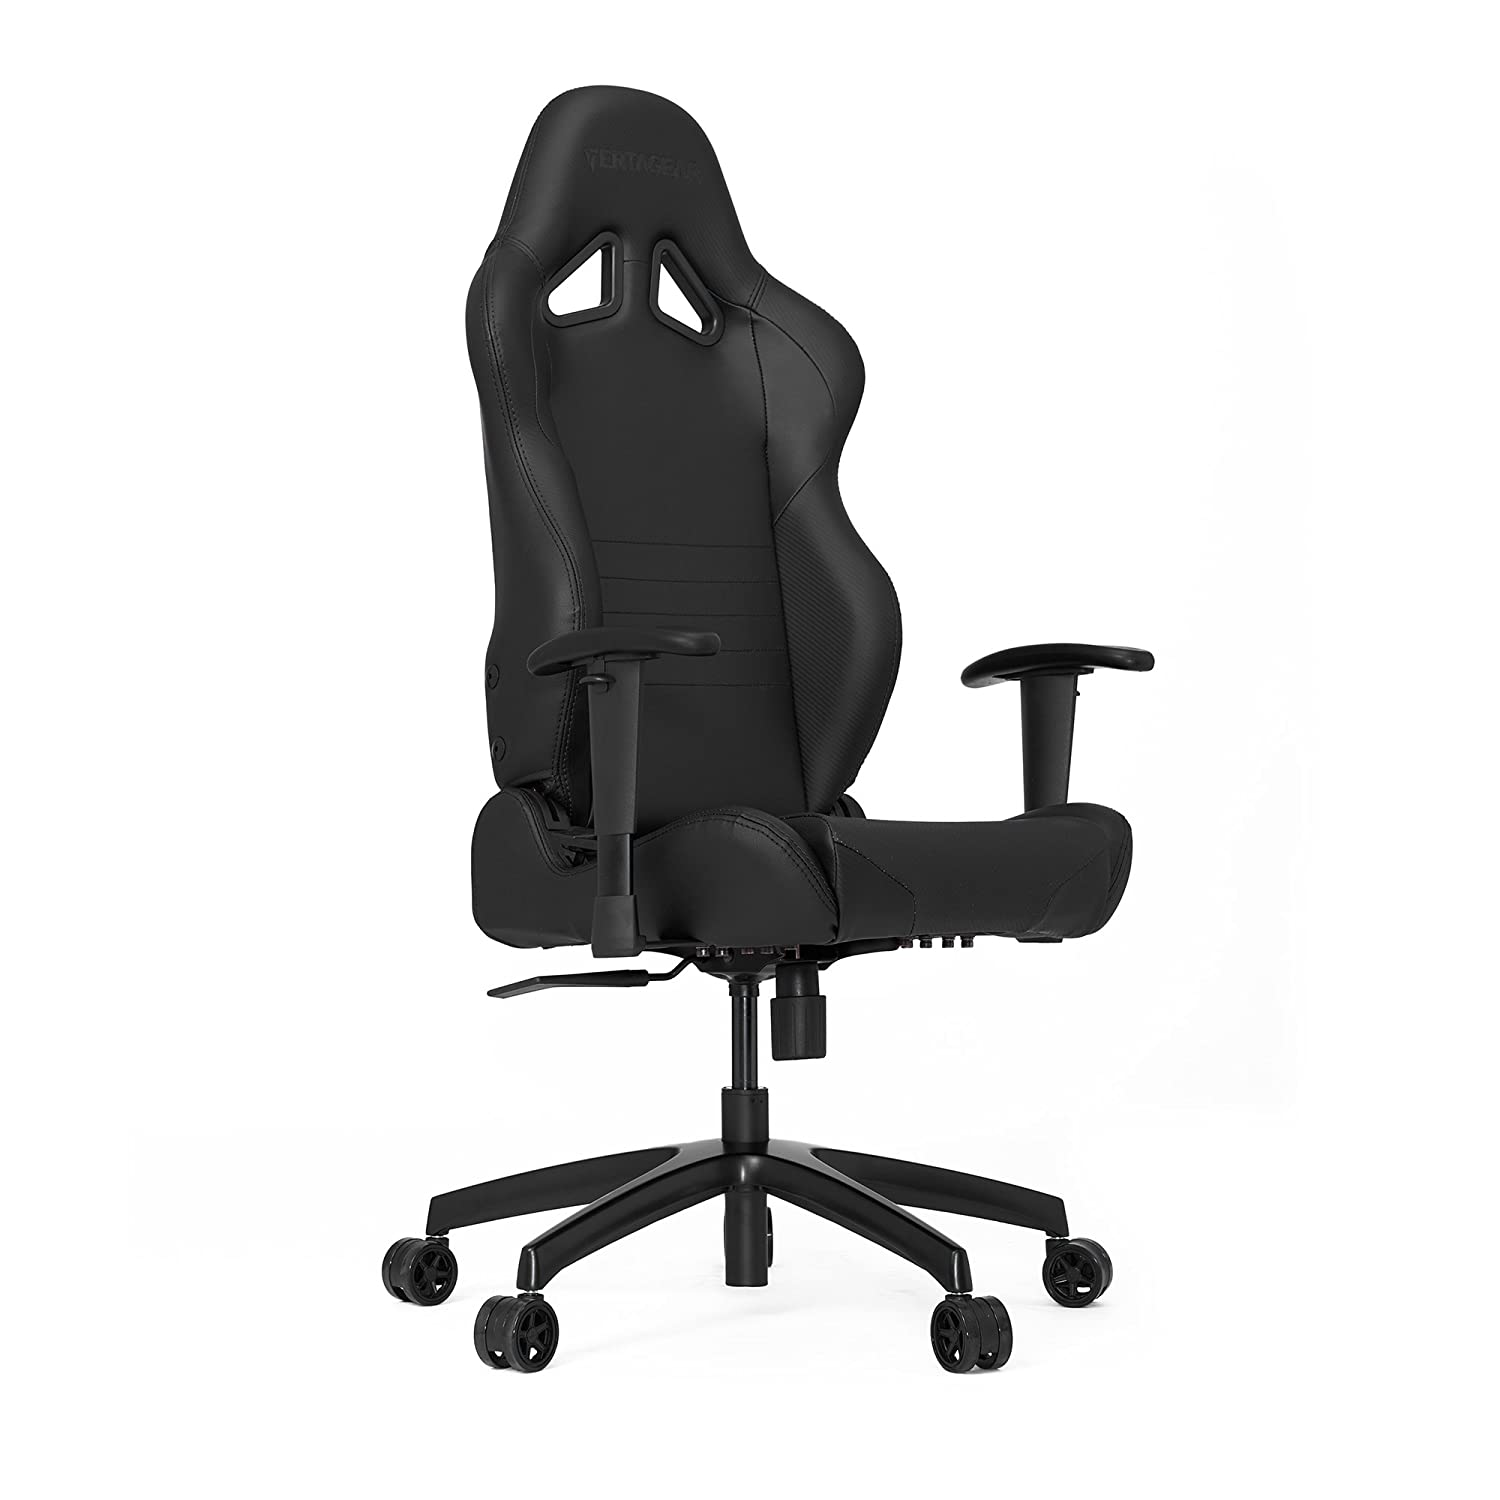 VERTAGEAR S-Line SL2000 Gaming Chair Black//Blue Edition